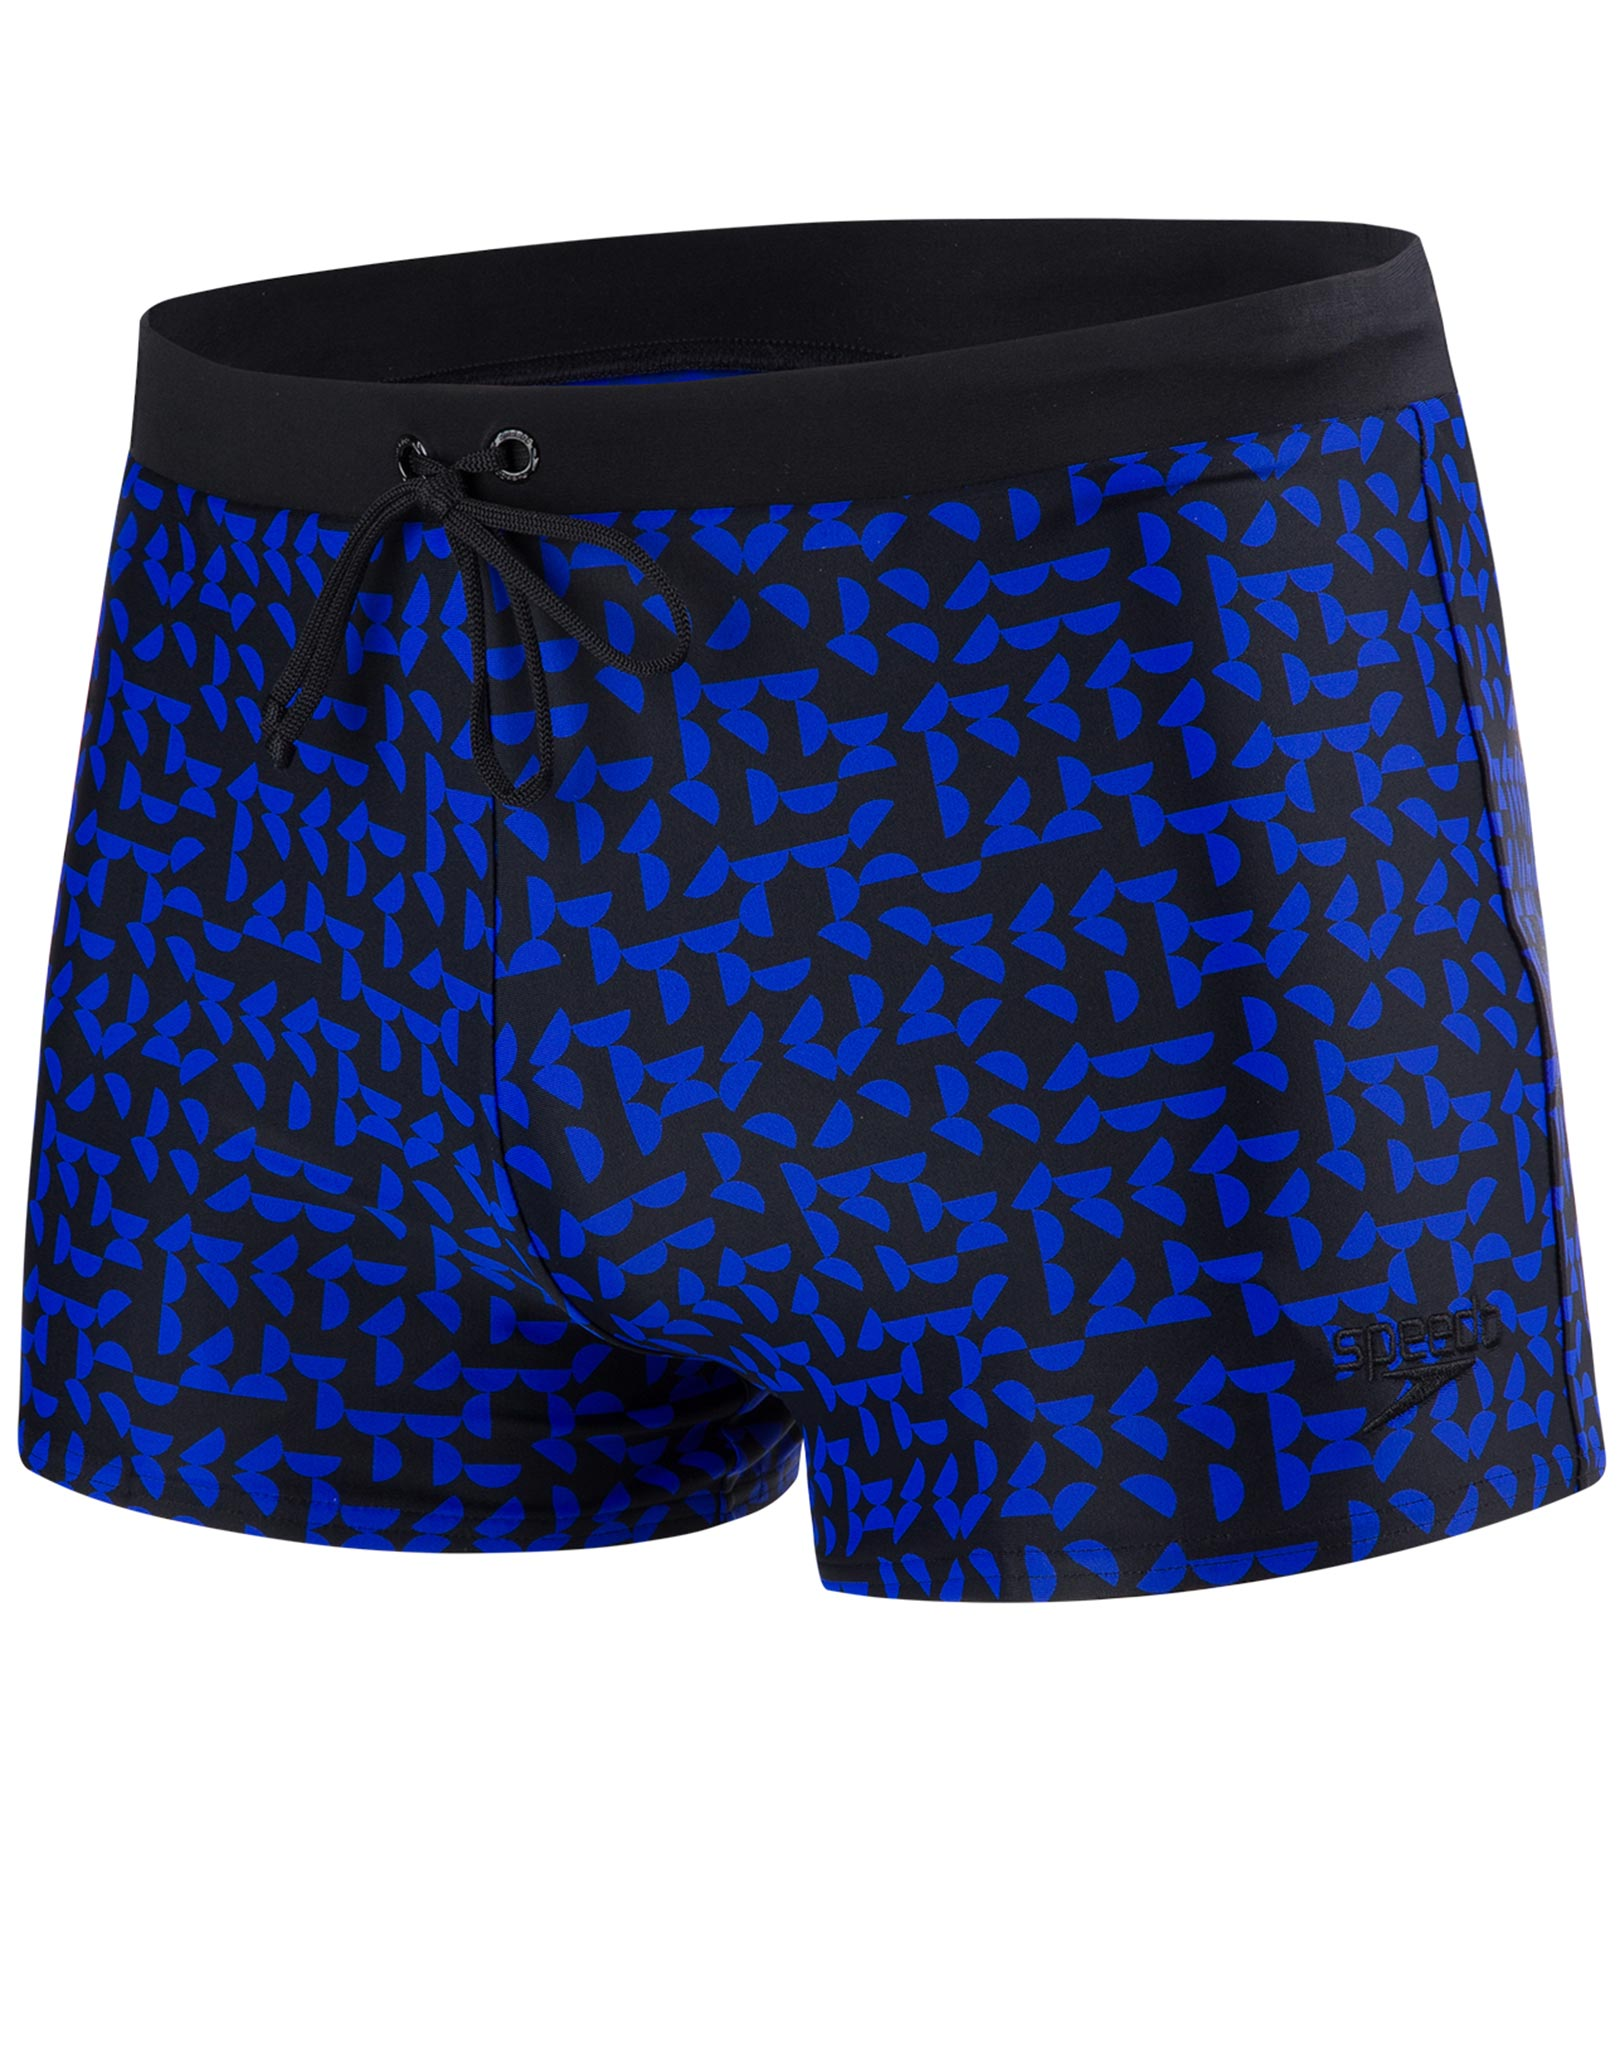 speedo vamilton swimming trunk - black and chroma blue